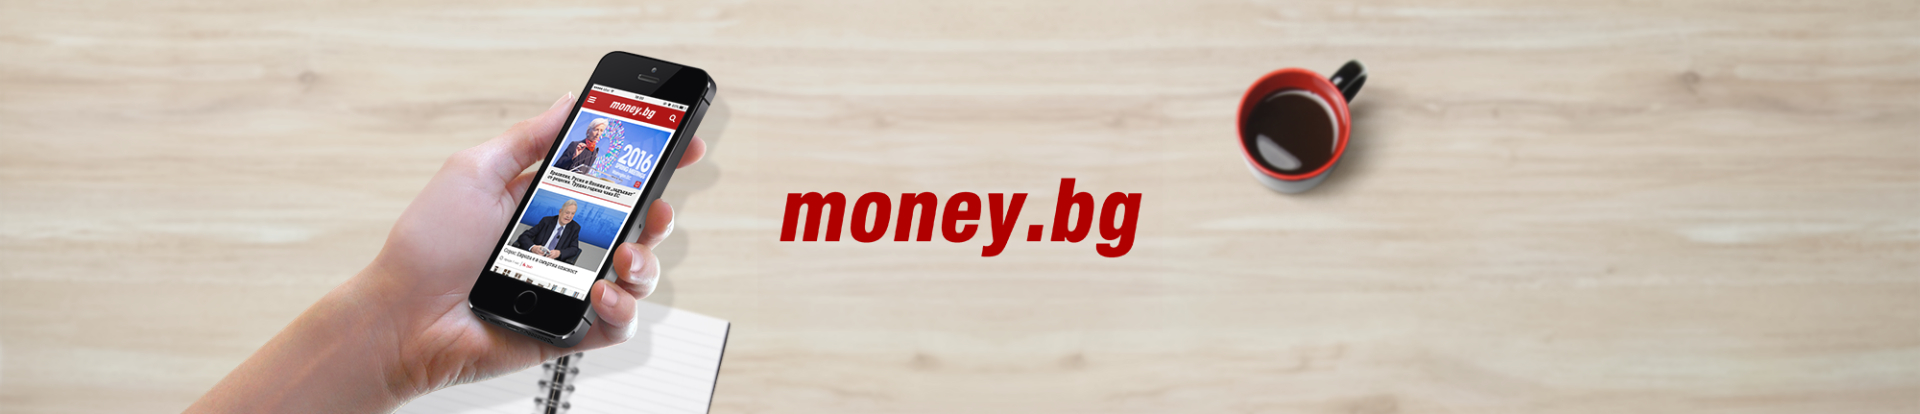 Money.bg